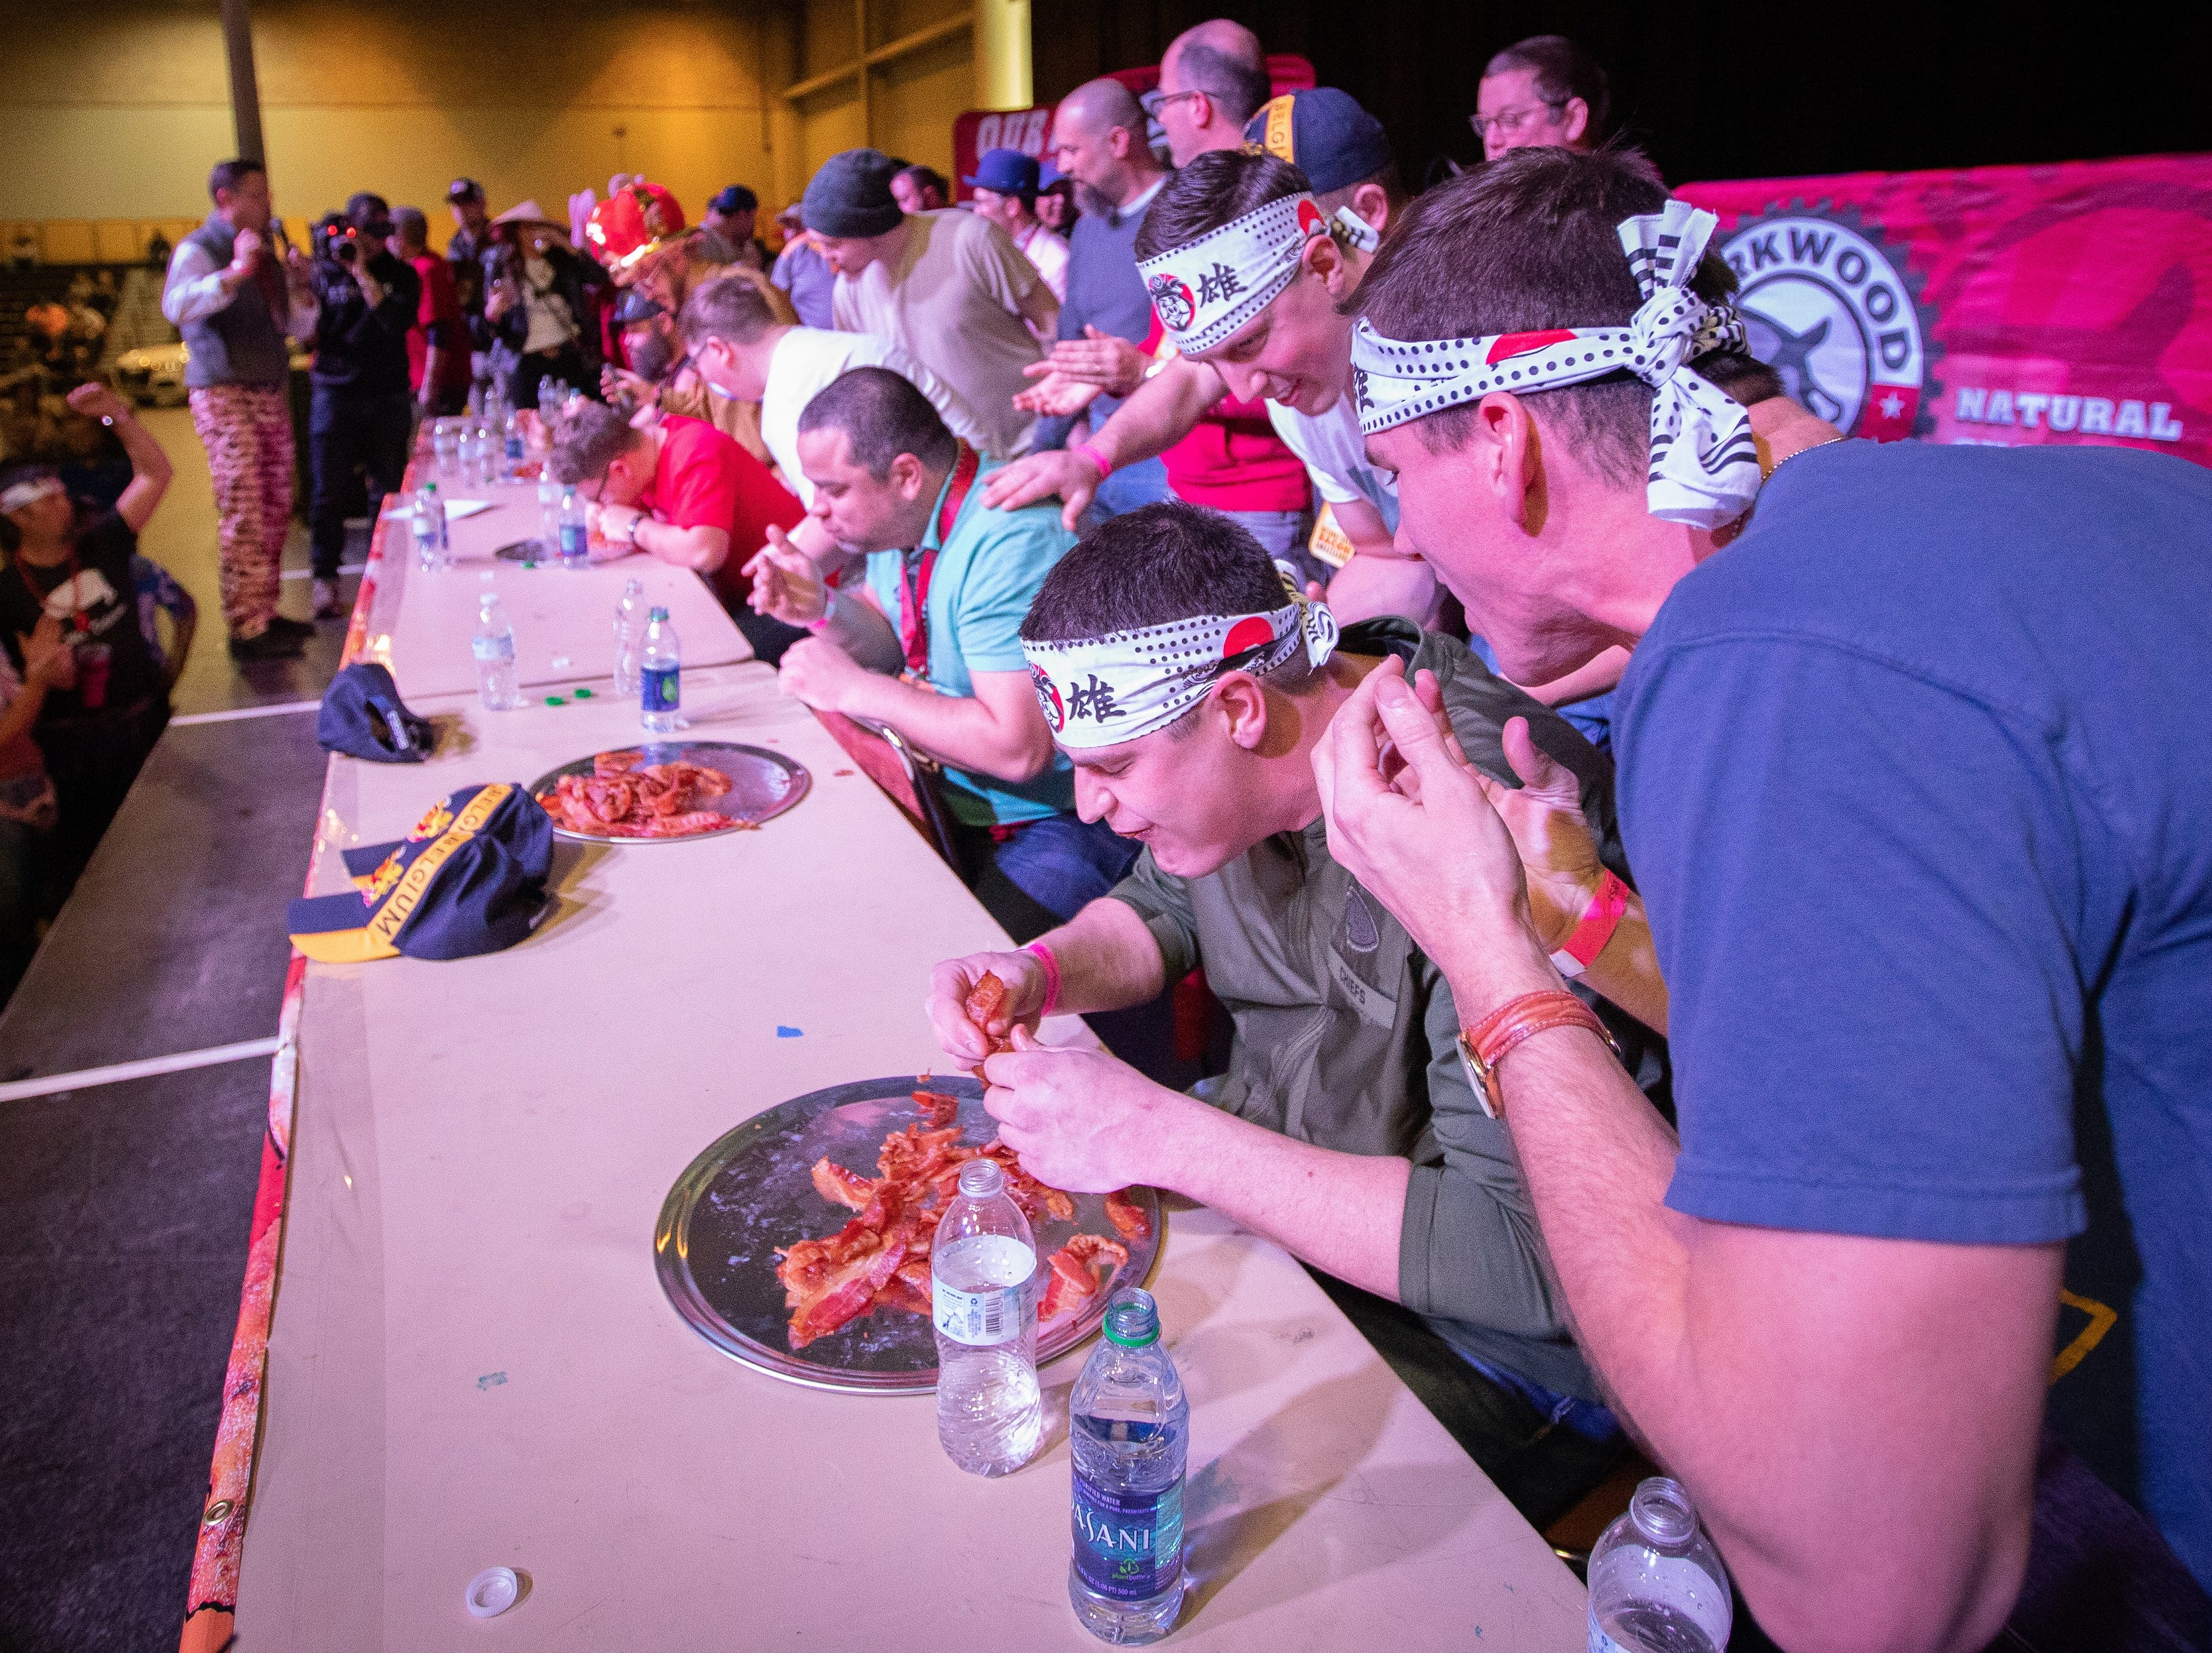 Patrons participate in the eating contest during the Bacon Fest at Hy-Vee Hall on Feb. 16, 2019 in Des Moines, Iowa.